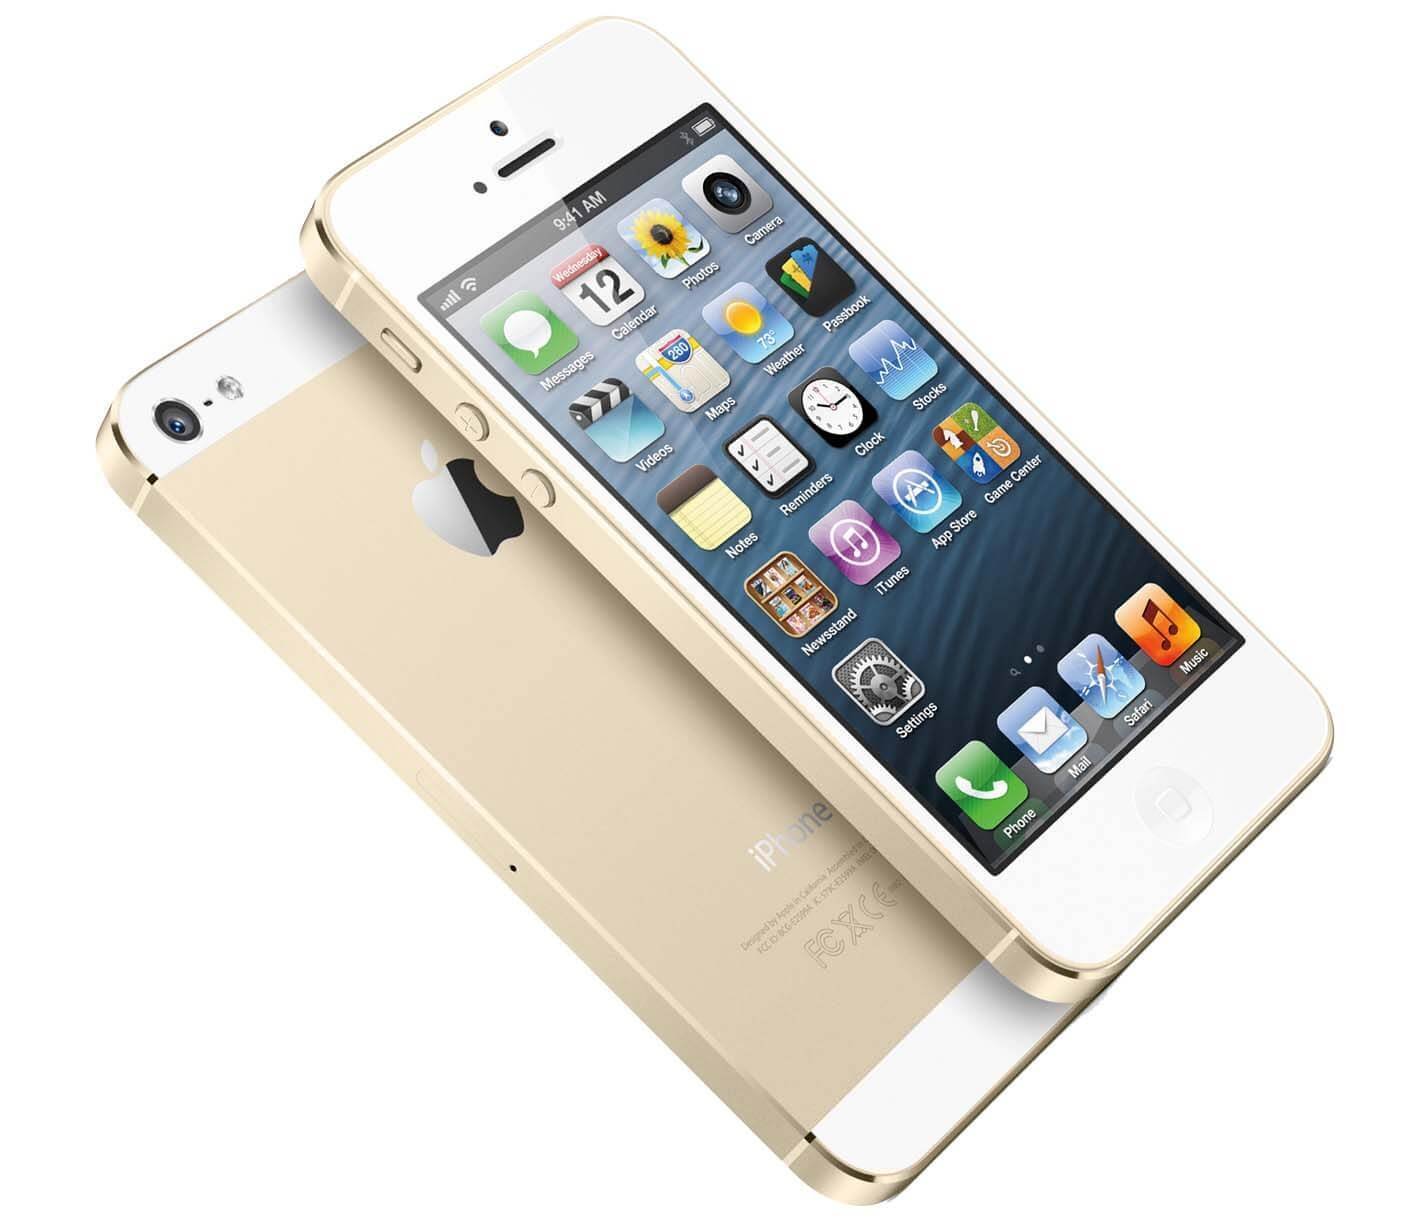 iphone 5s model number how to identify different iphone models wasconet 8805